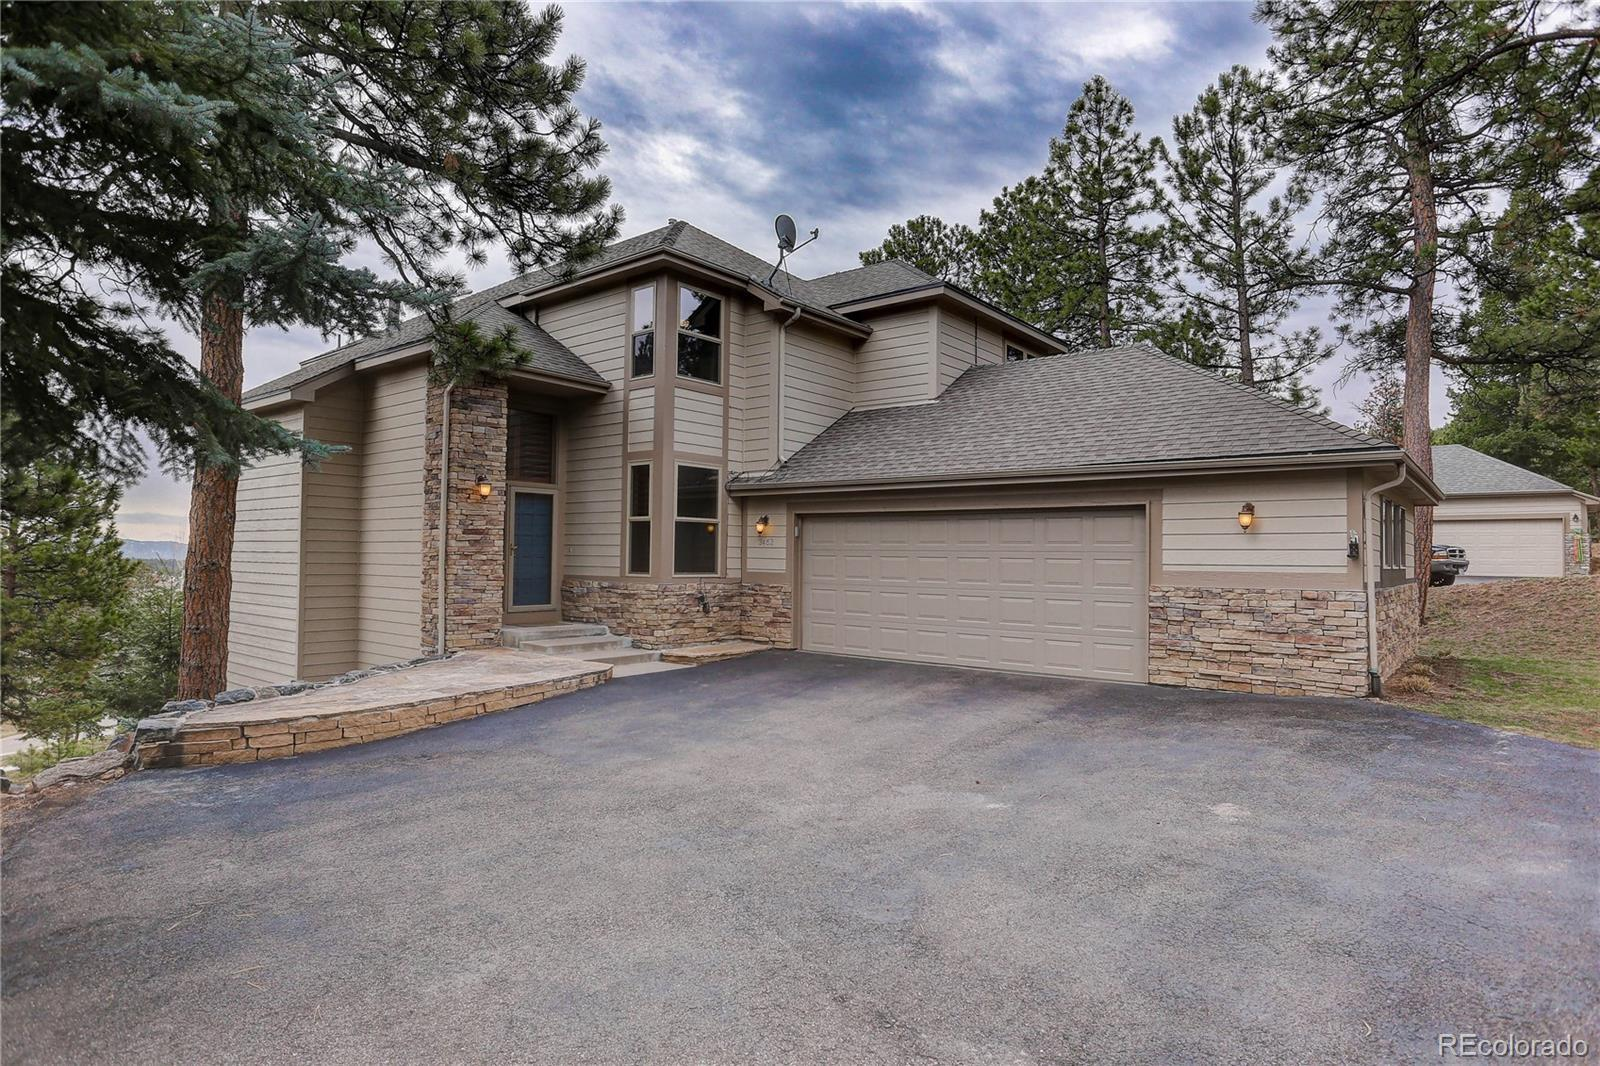 3462 Overlook Trail, Evergreen, CO 80439 - #: 3639972